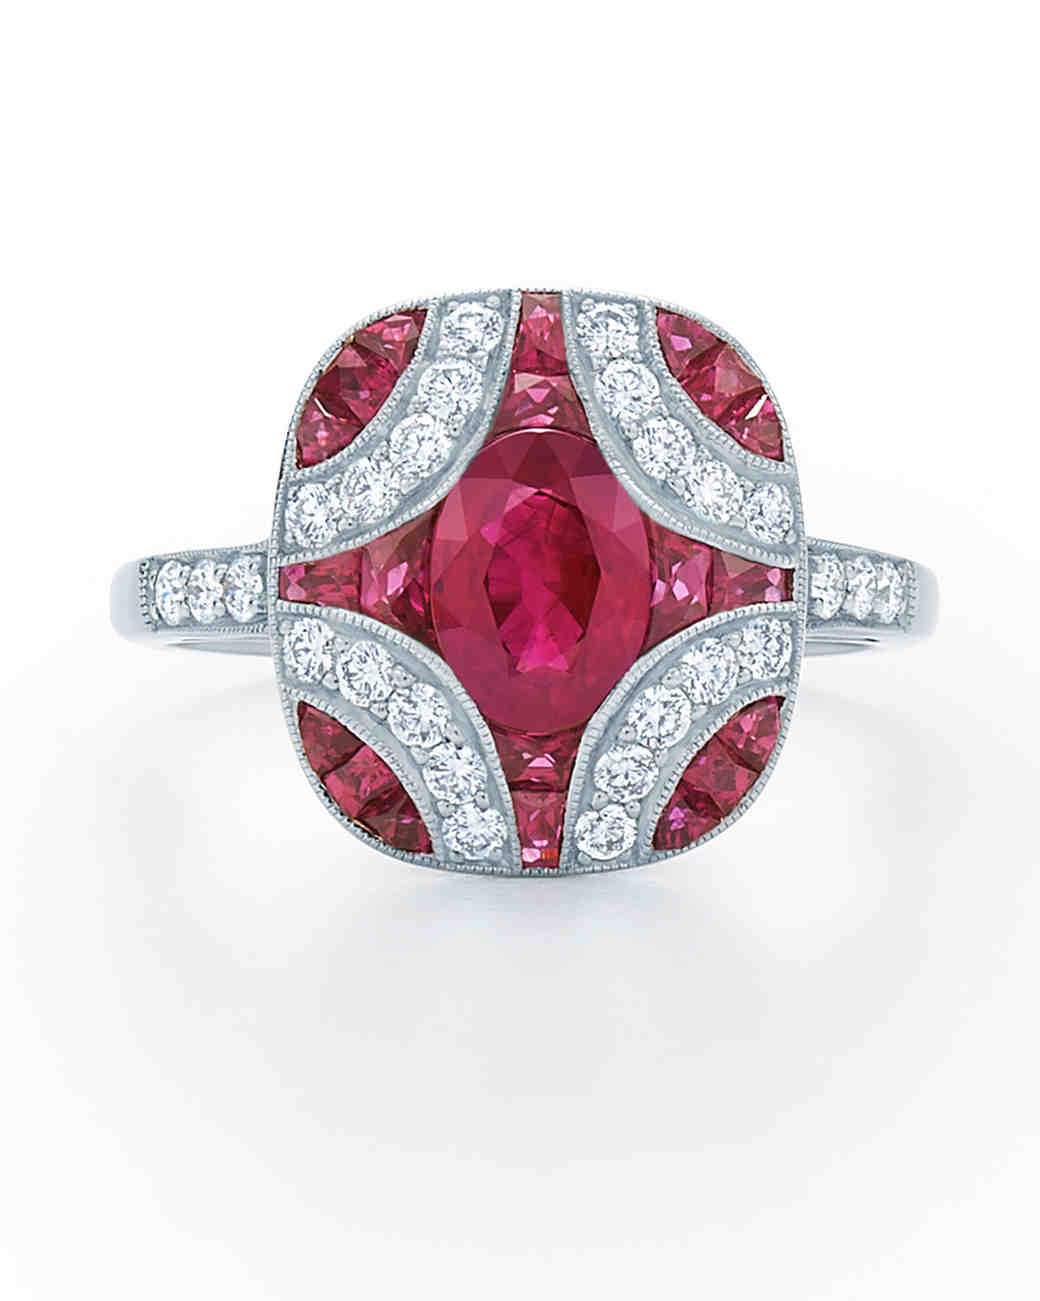 Kwiat Vintage Ruby Engagement Ring With Diamond Detailing